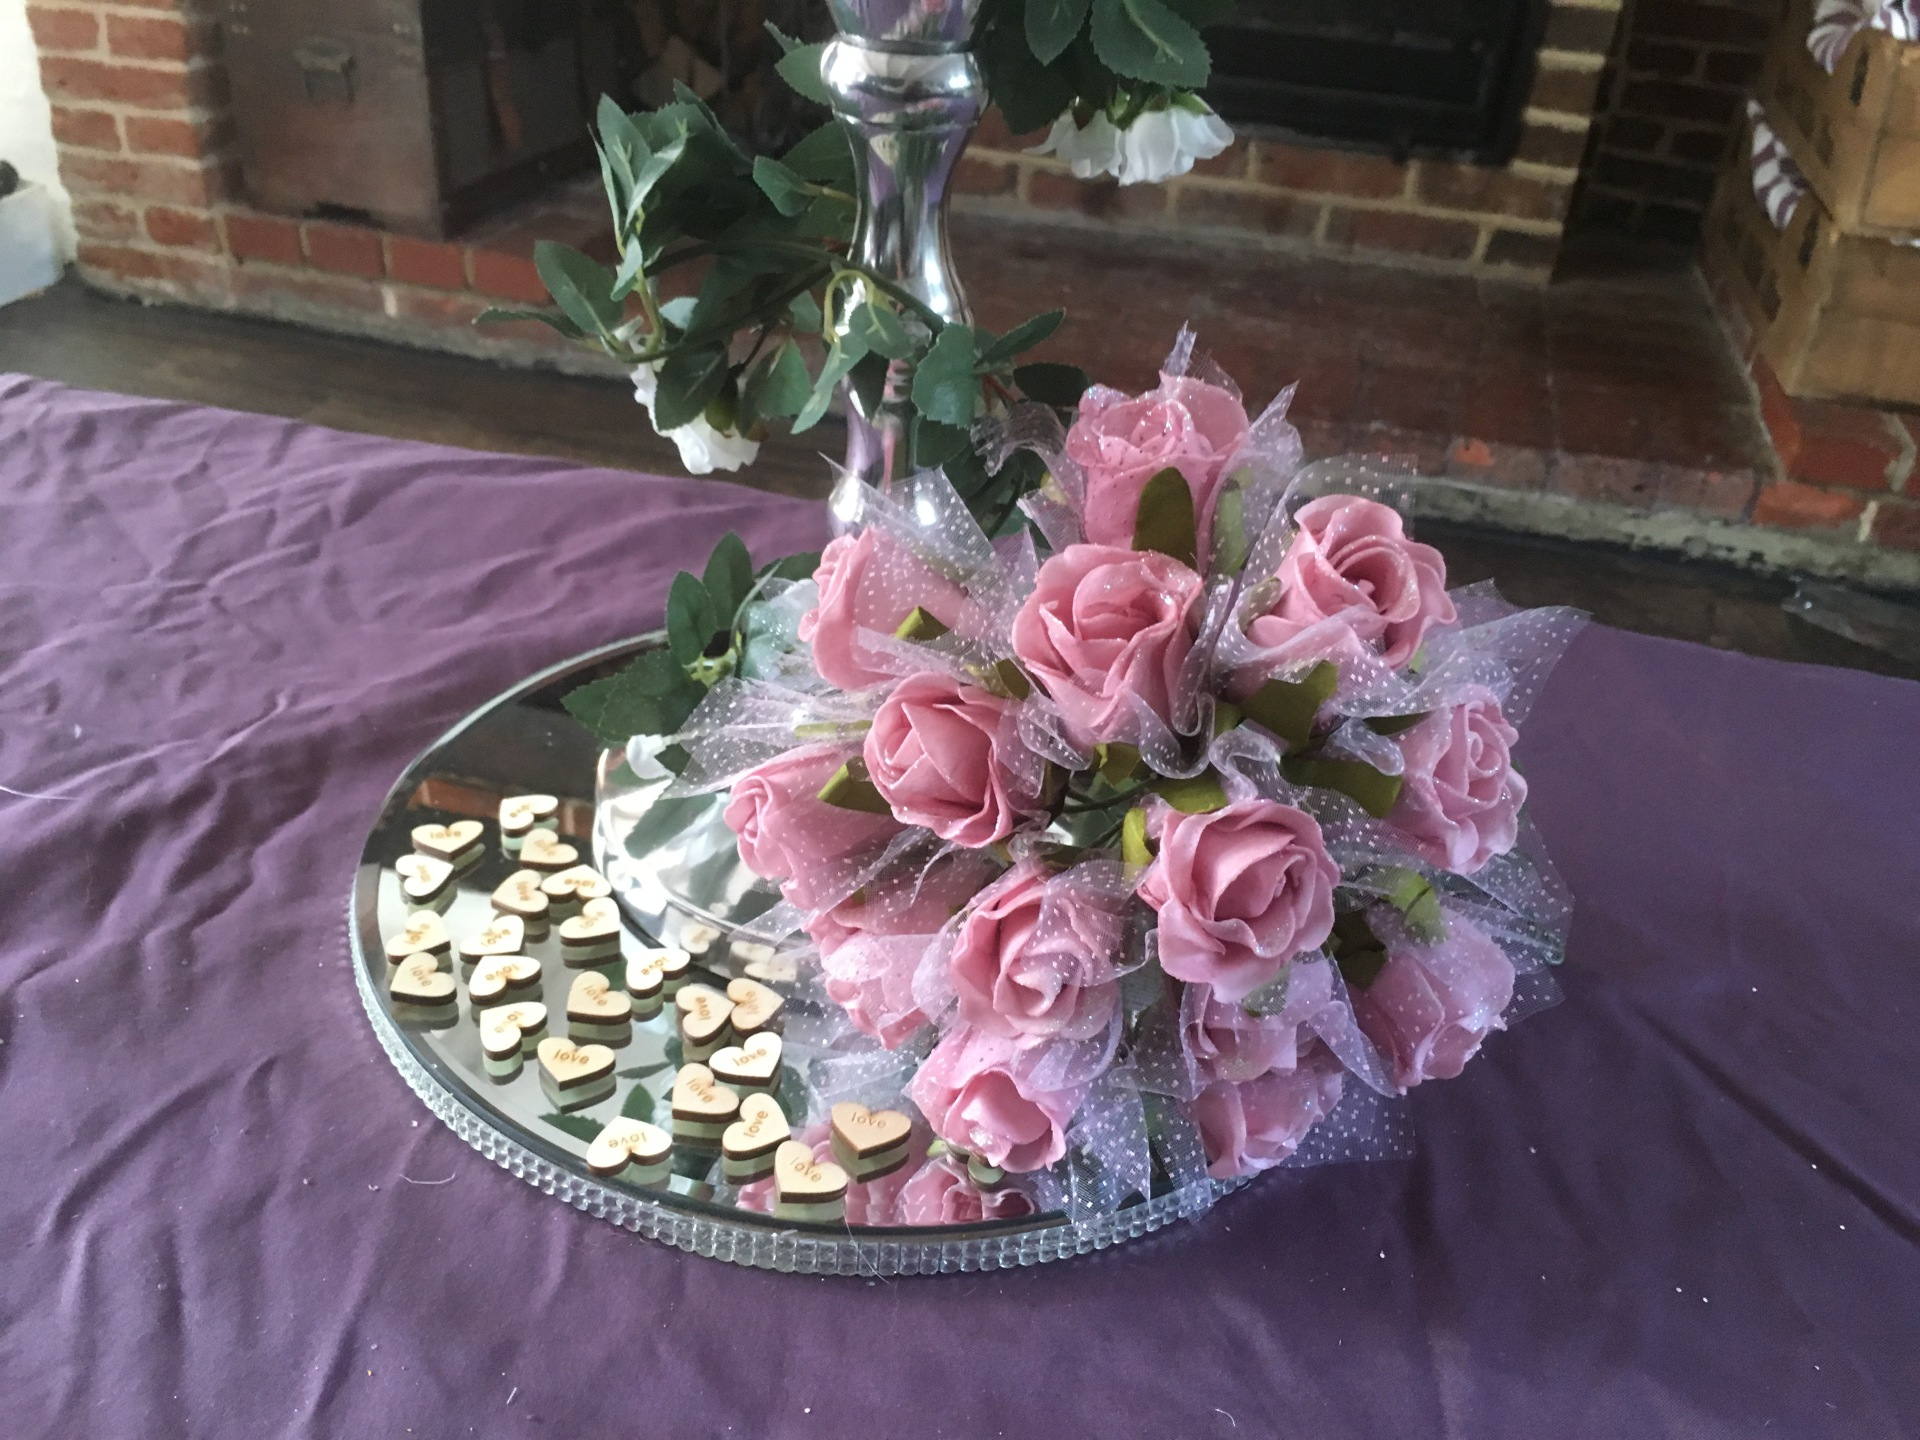 Mirrored plates shown with flower Detail and wooden heart scatters